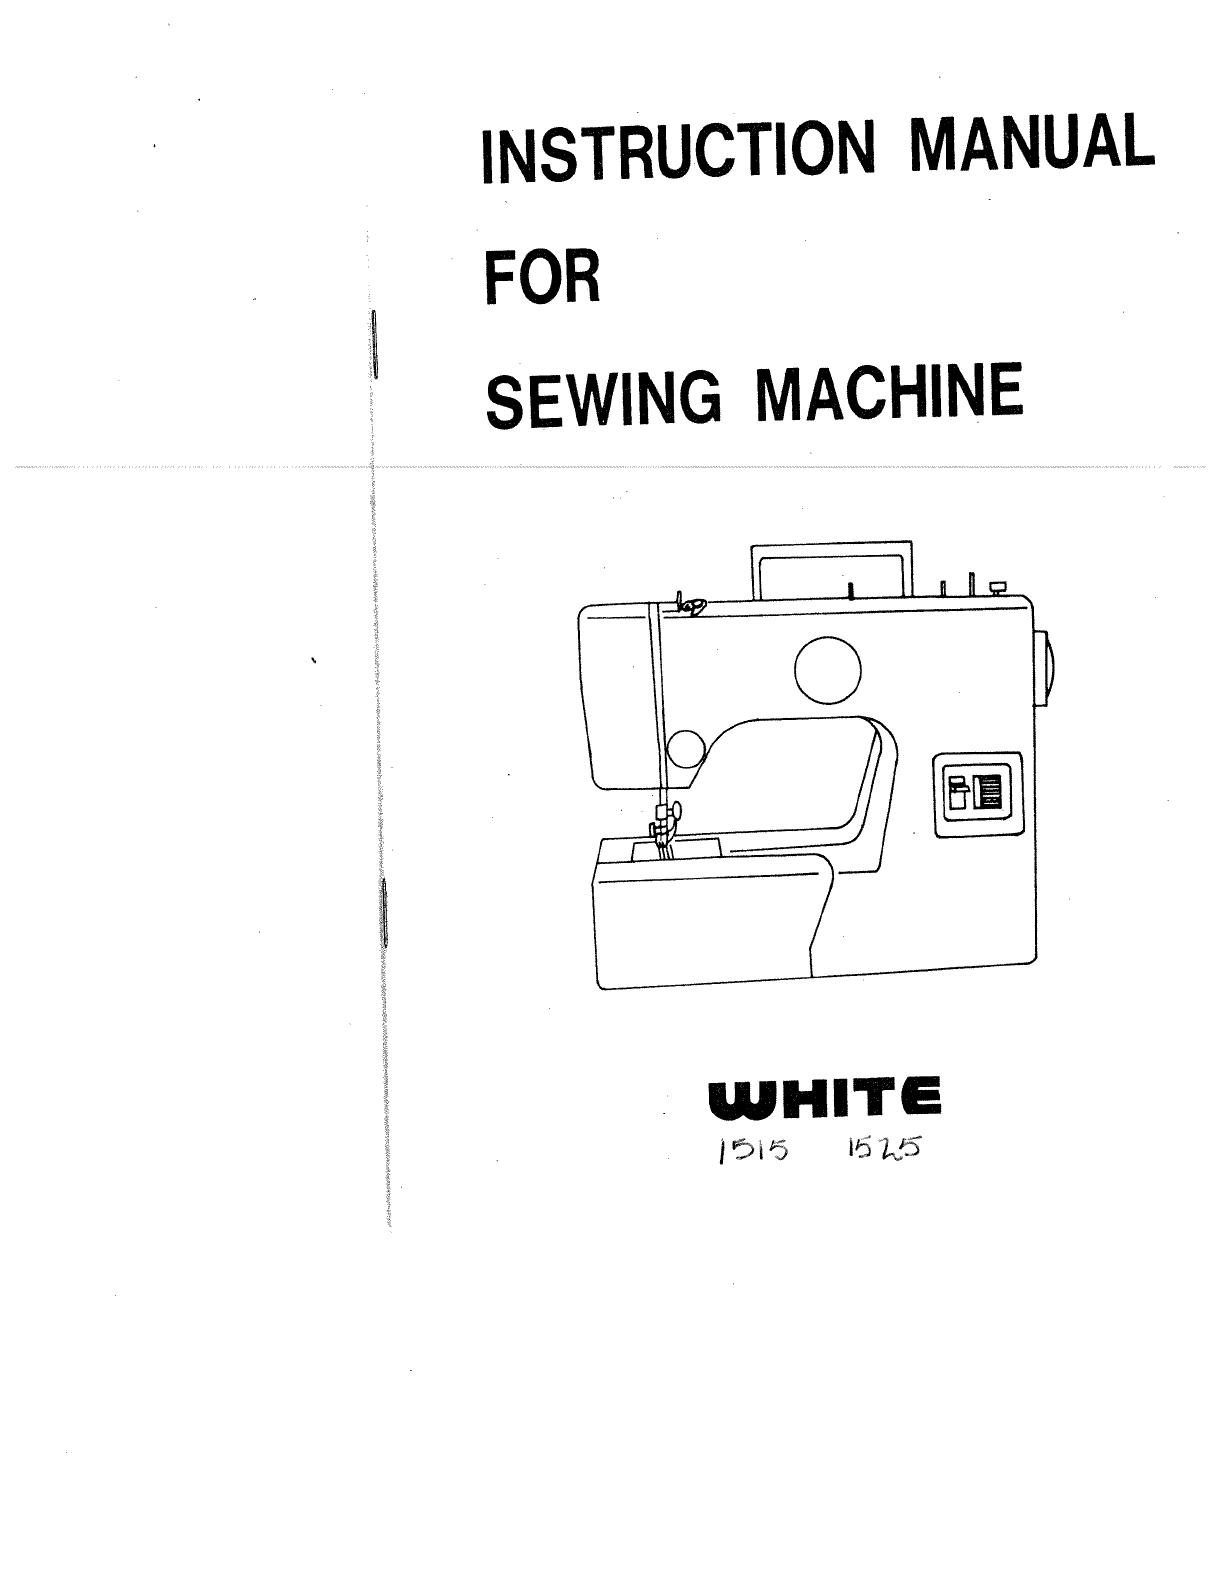 988 white sewing machine manual instructions.